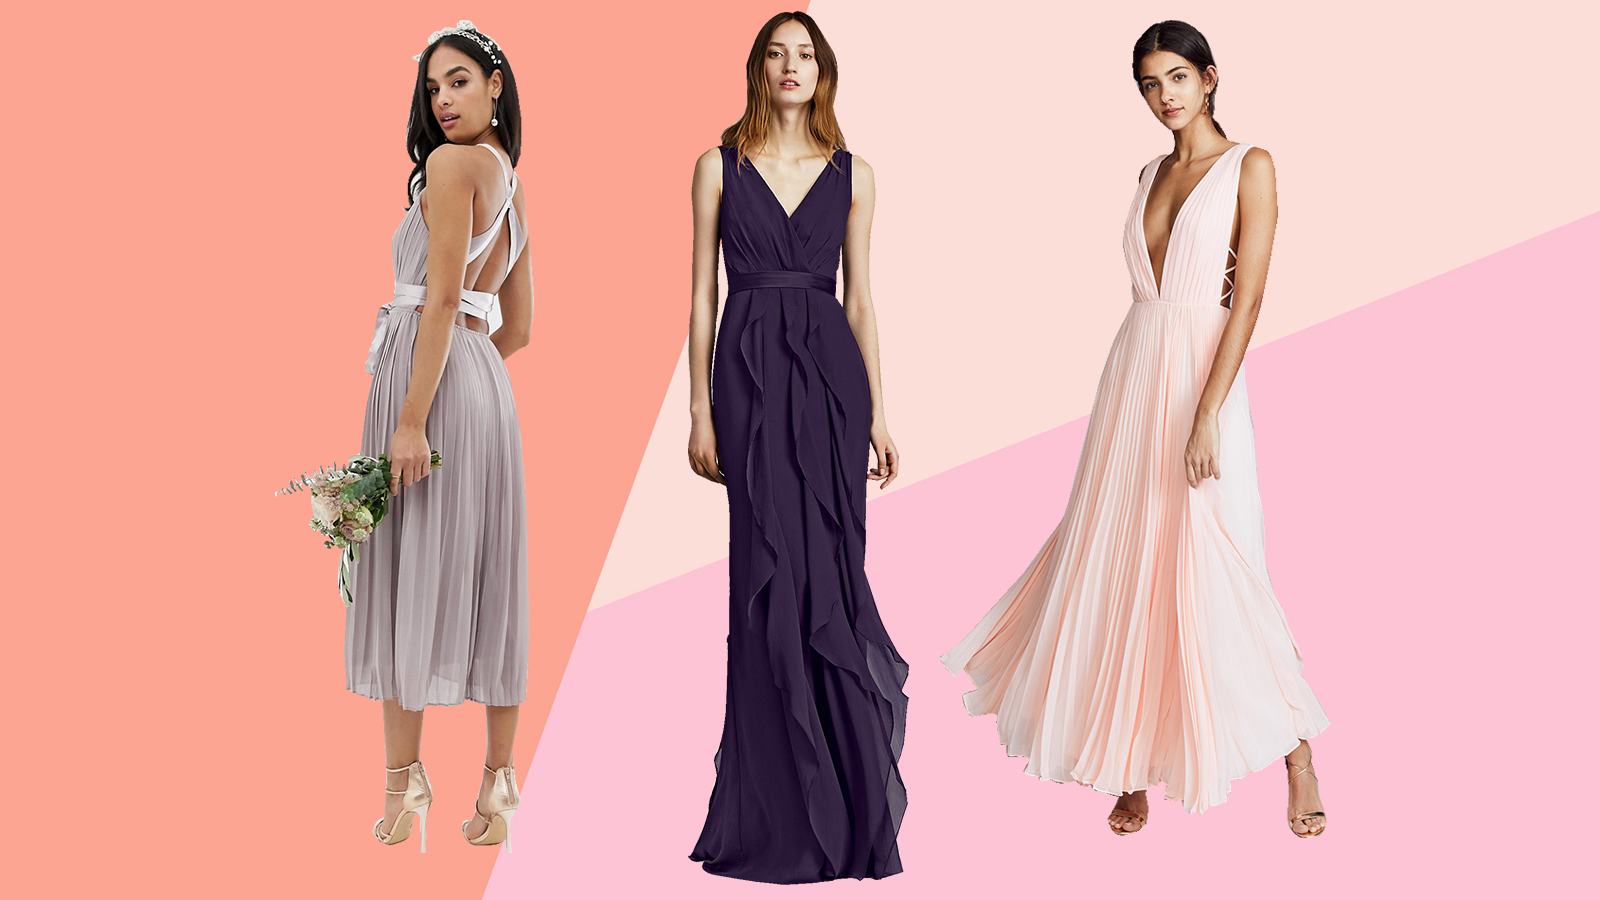 Where to Buy Bridesmaids Dresses Online That Your Bridal Party Will Adore